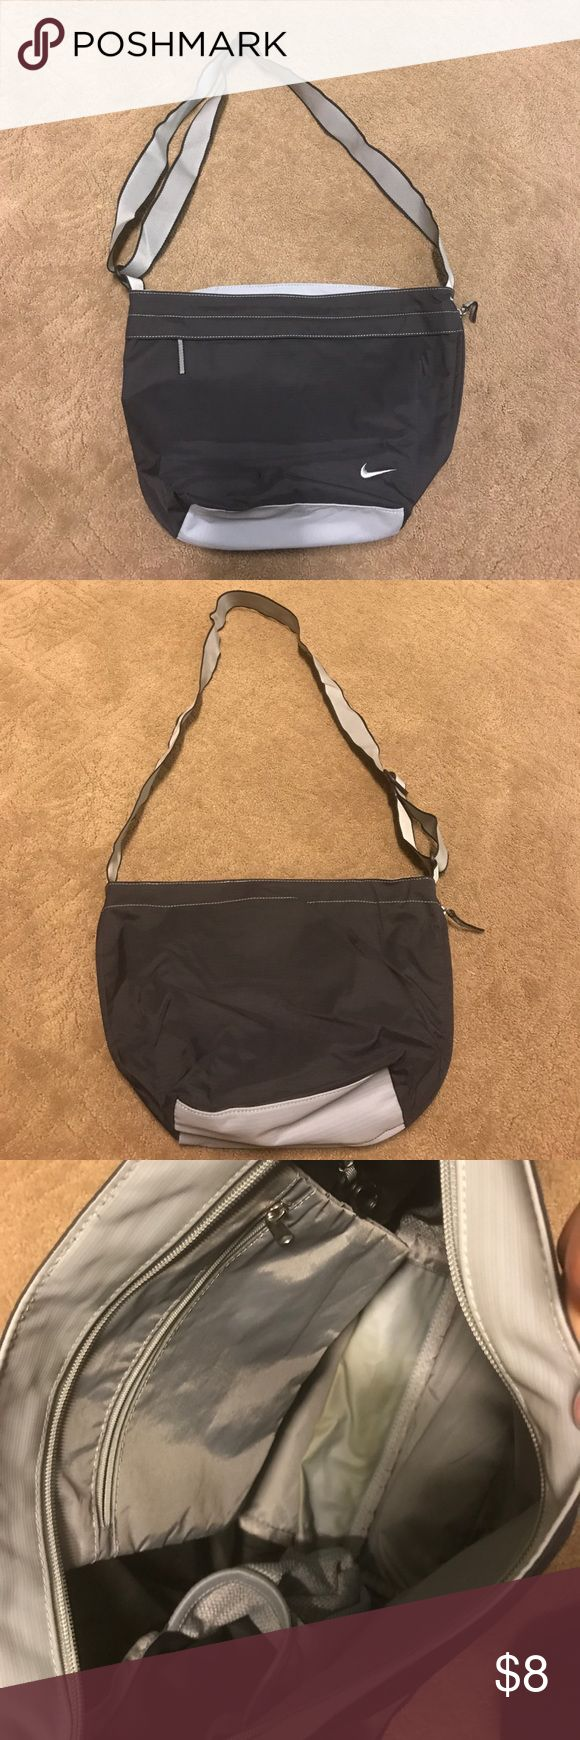 Nike  mesh Bag Gently used Nike Shoulder Bag. Has  a zipper that expands the bag. Also has front pocket for storage as well. Can be worn as crossbody or on the shoulder (mesh bag) Nike Bags Crossbody Bags